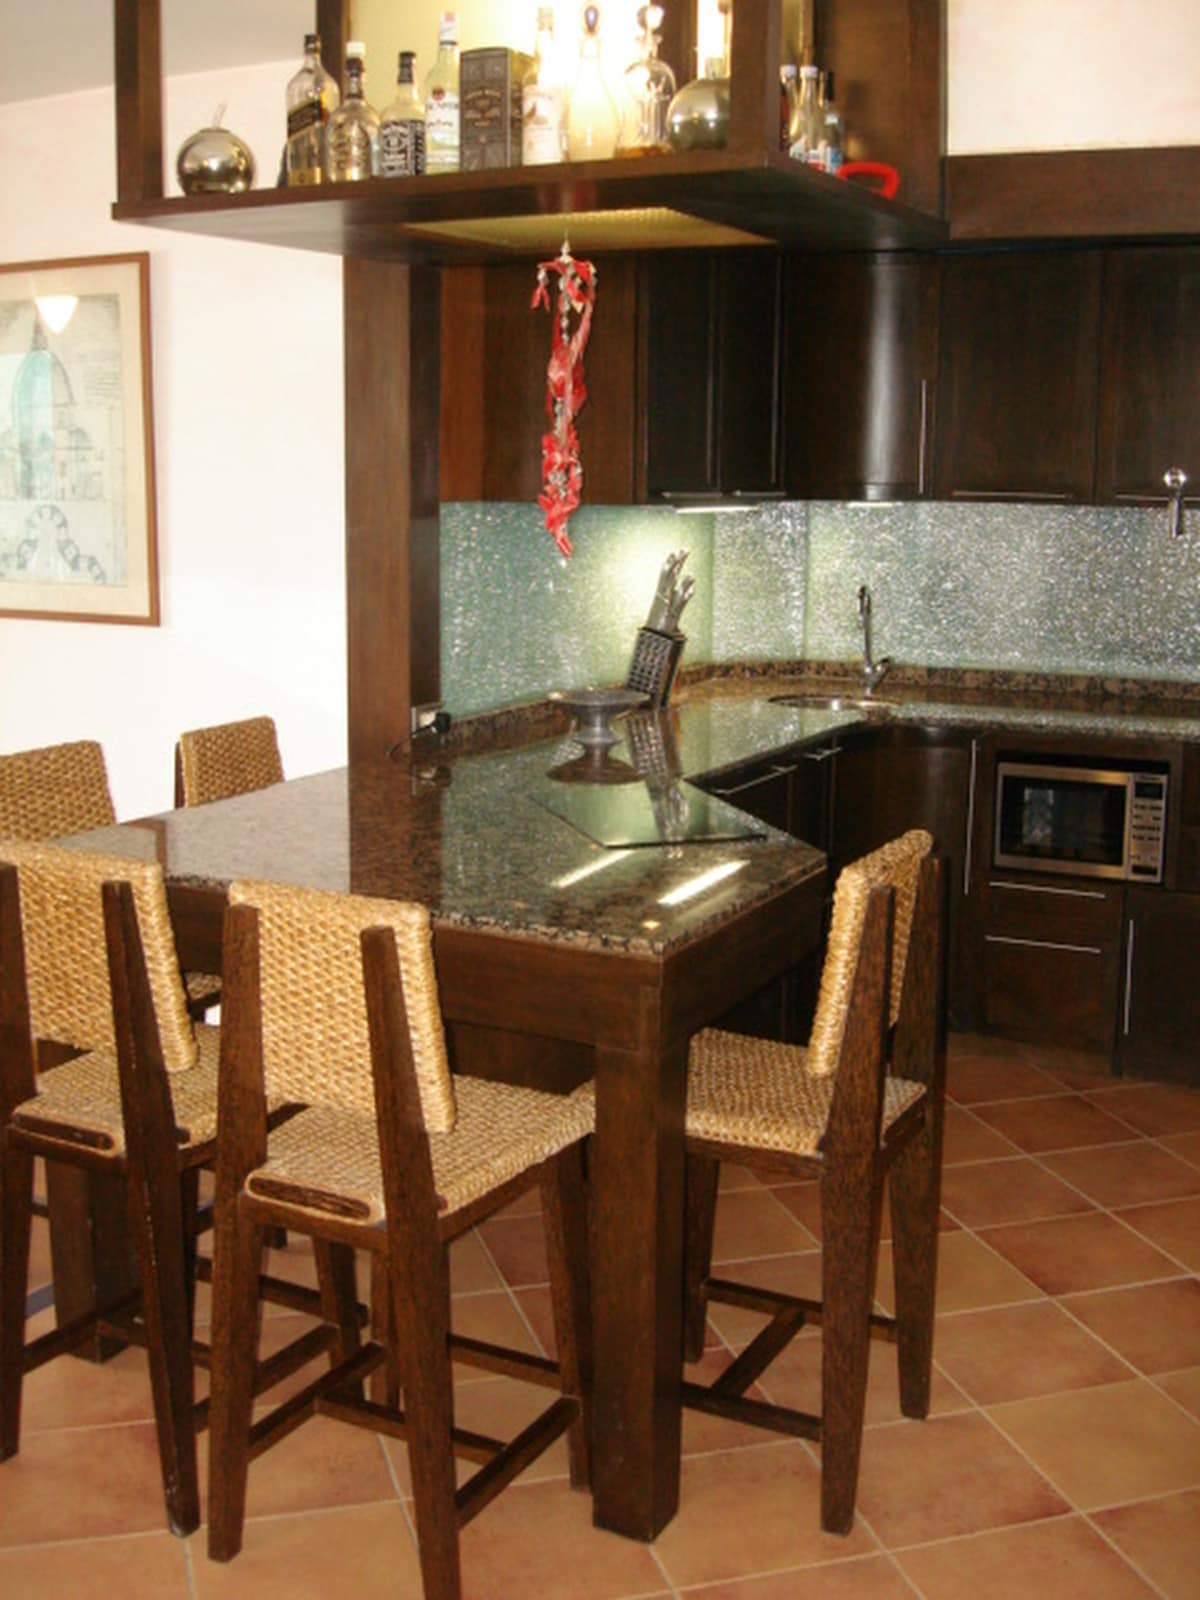 Kitchen with dining-table and bar